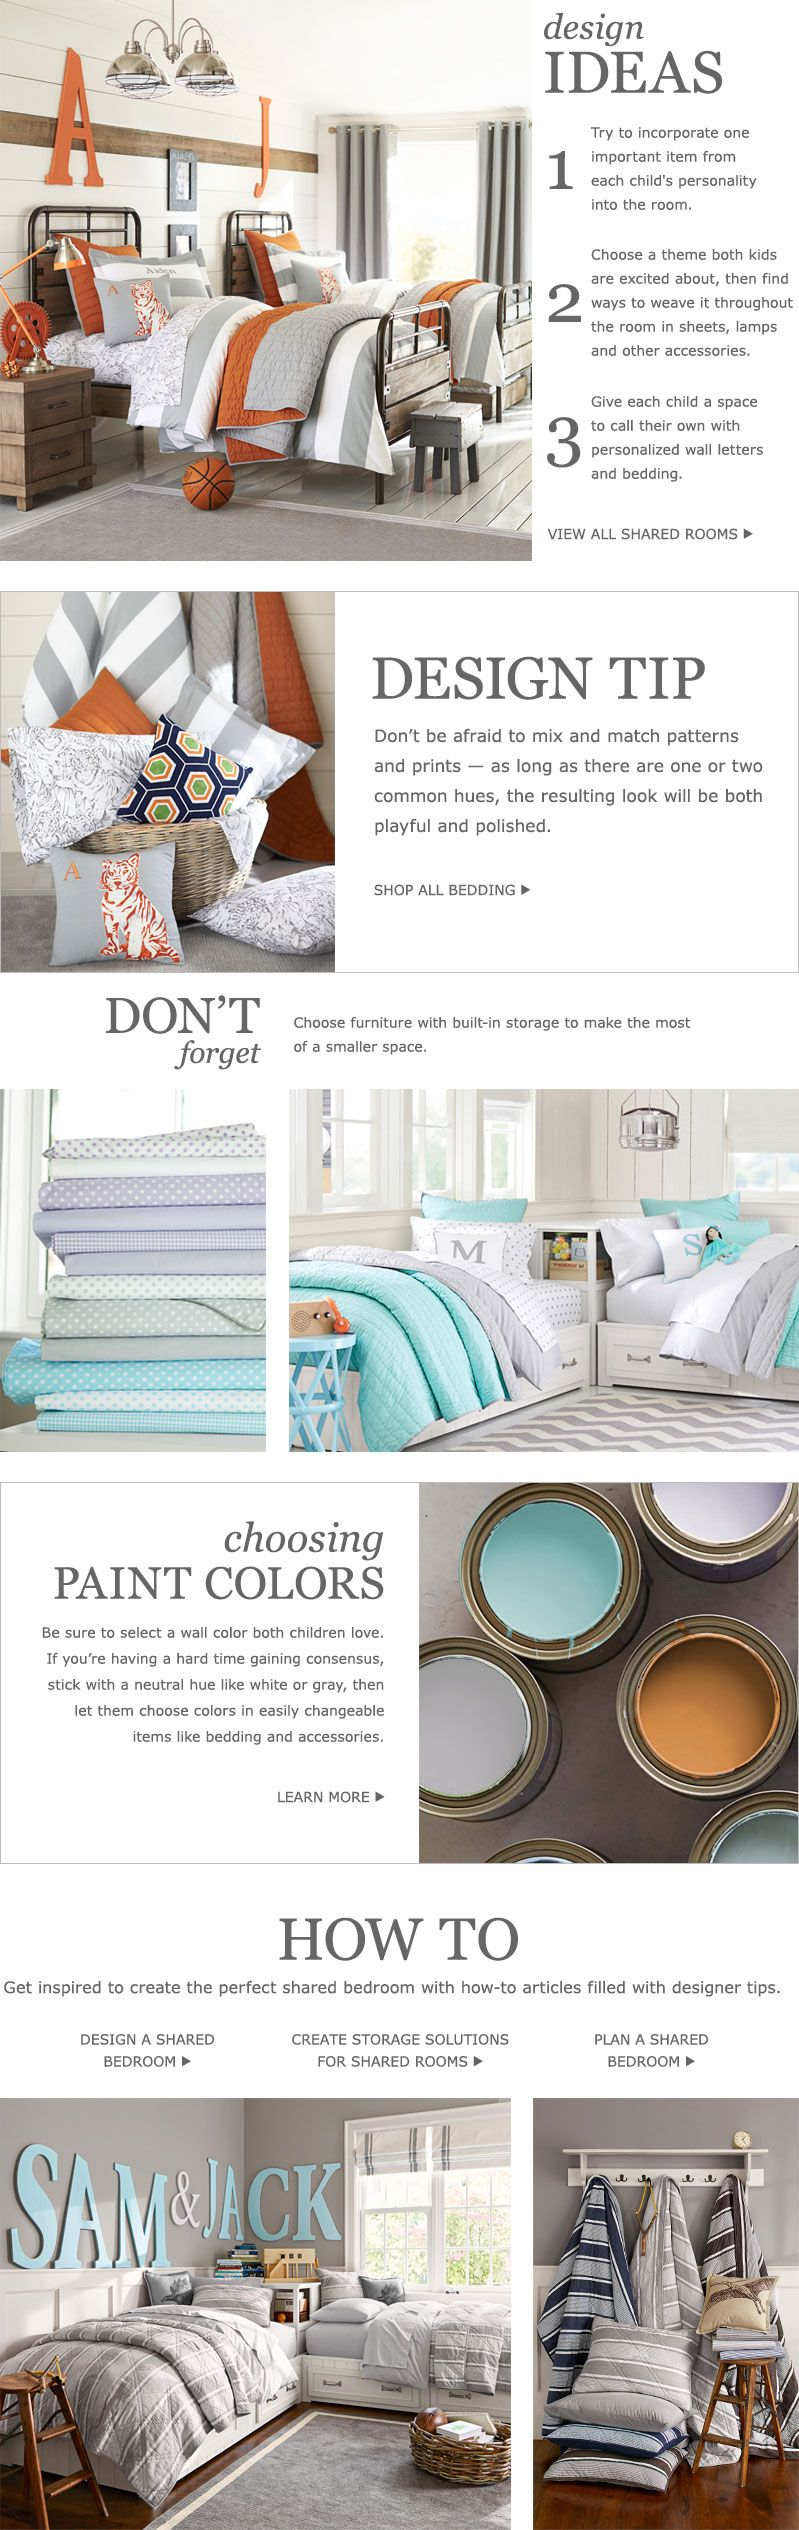 Pottery Barn Girls Bedrooms In Love With This Aqua Bedding Pottery Barn Kids Shared Room